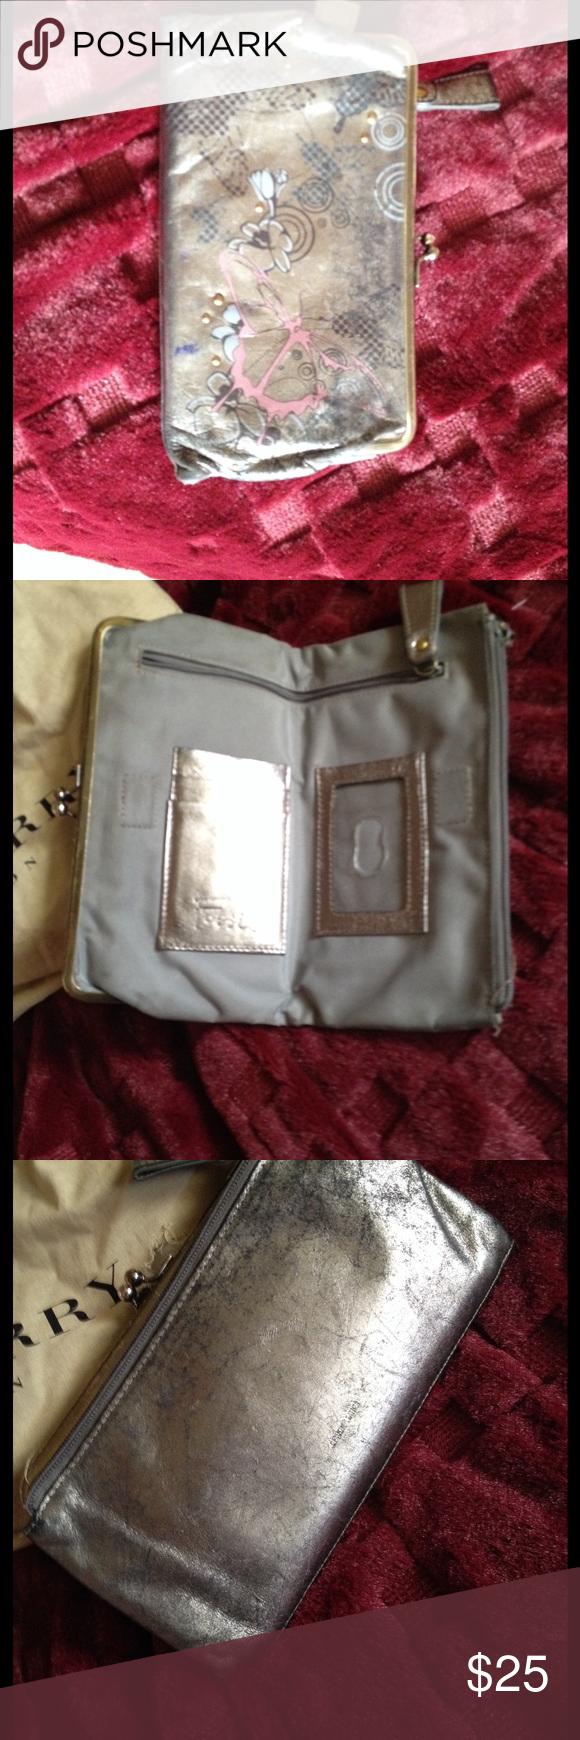 silver metallic fossil wallet great condition Fossil Bags Wallets